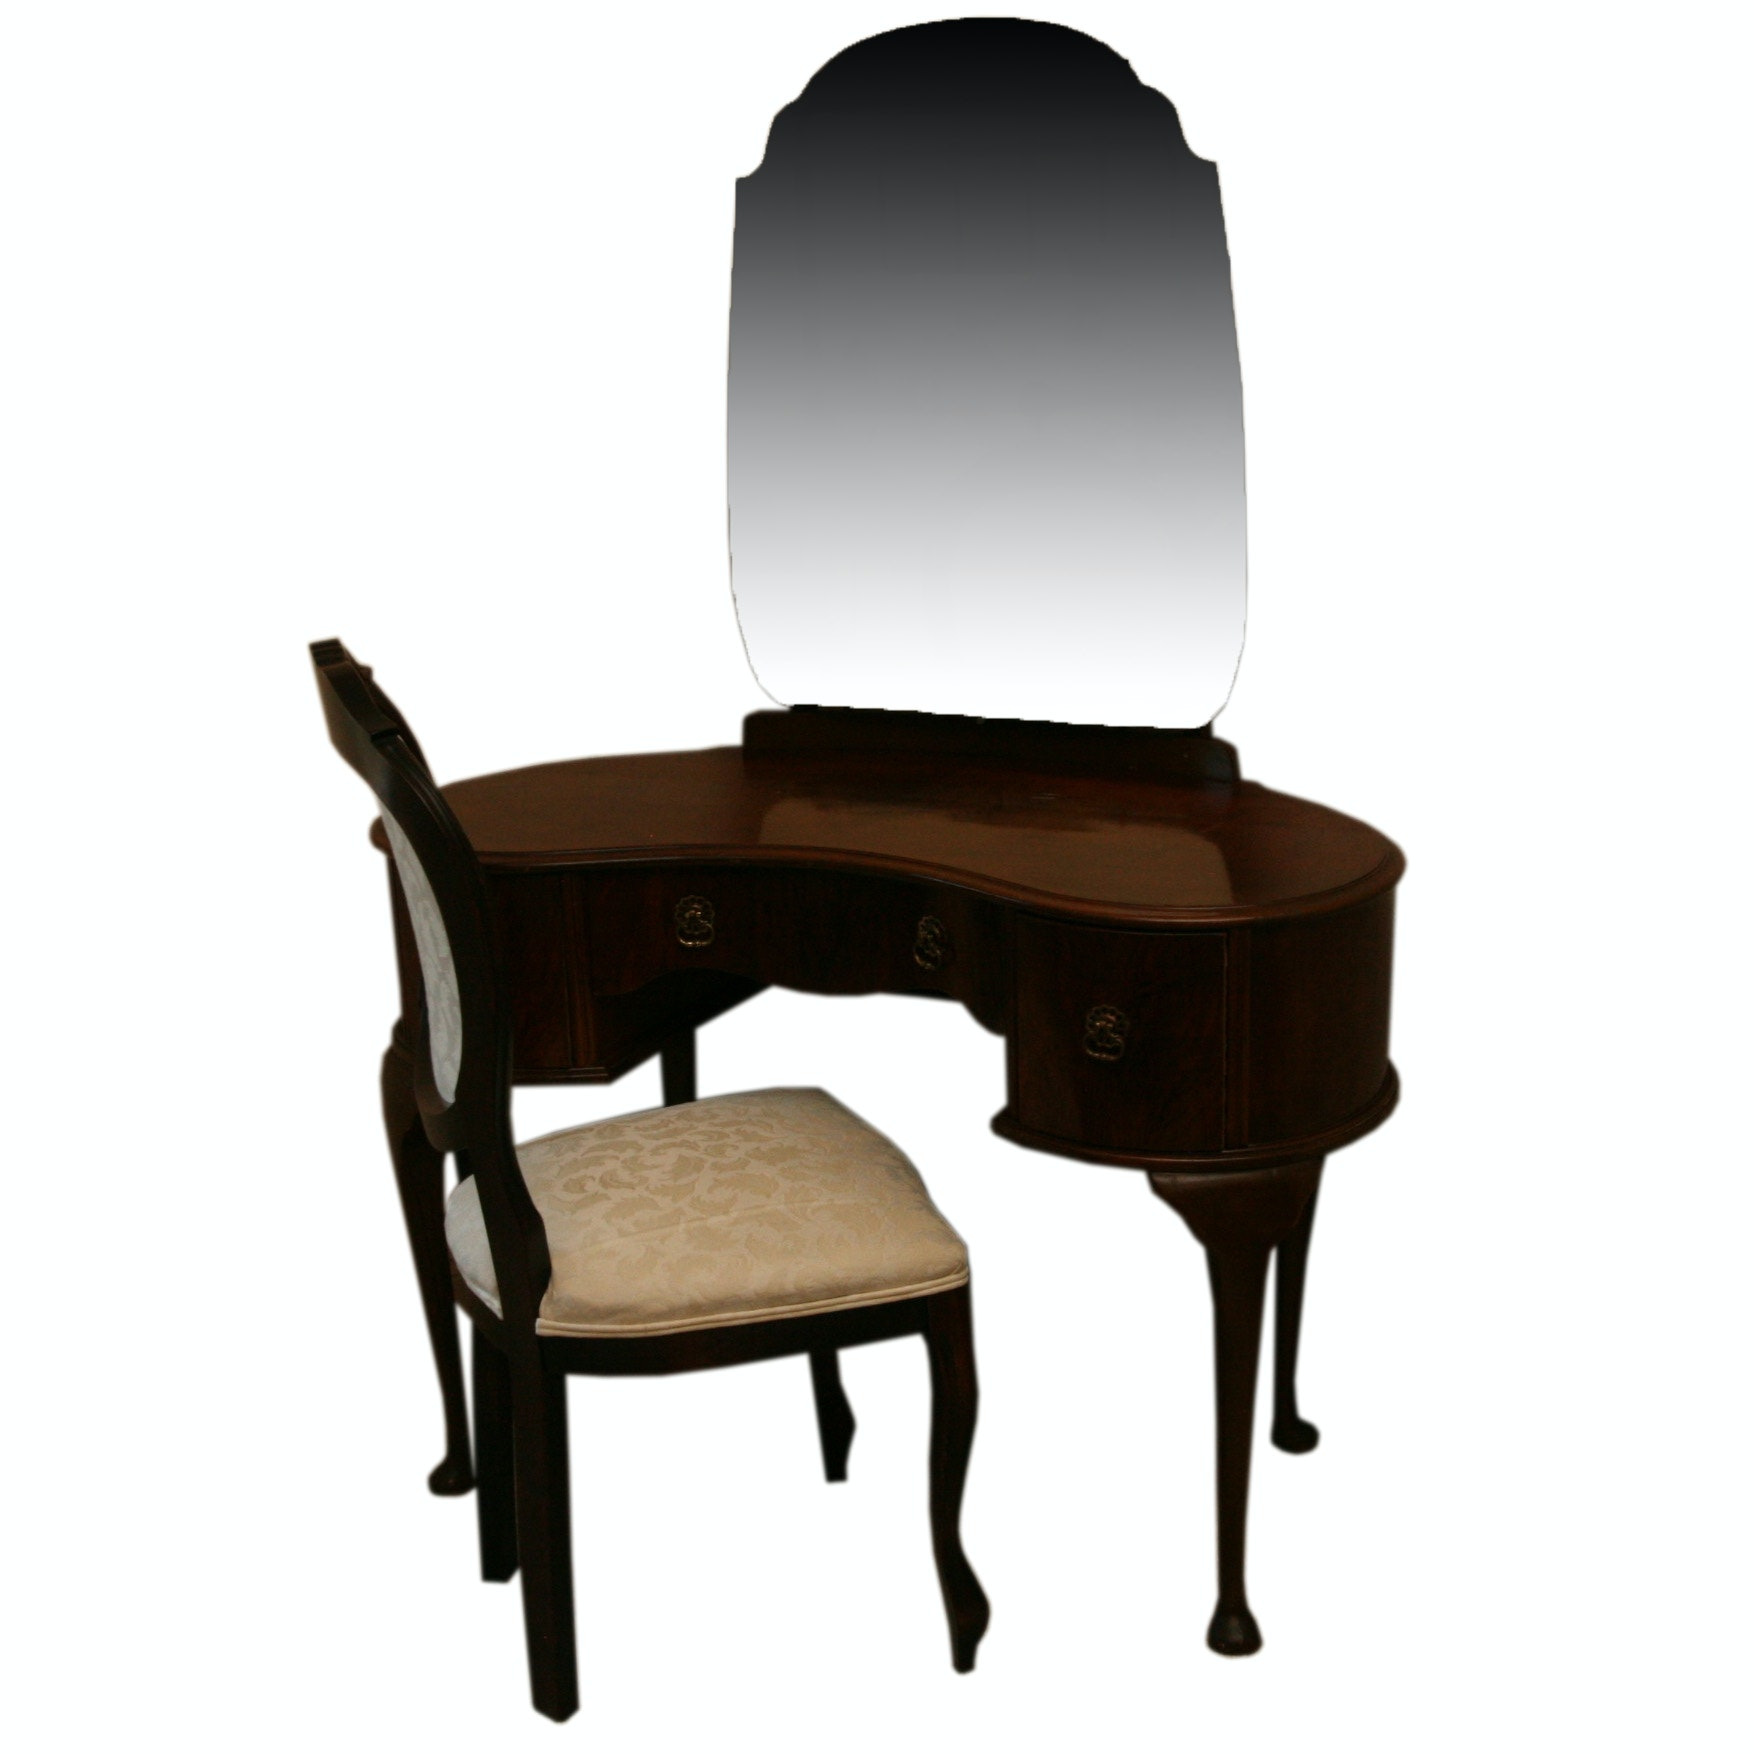 Kidney Shaped Vanity Table with Mirror and Chair